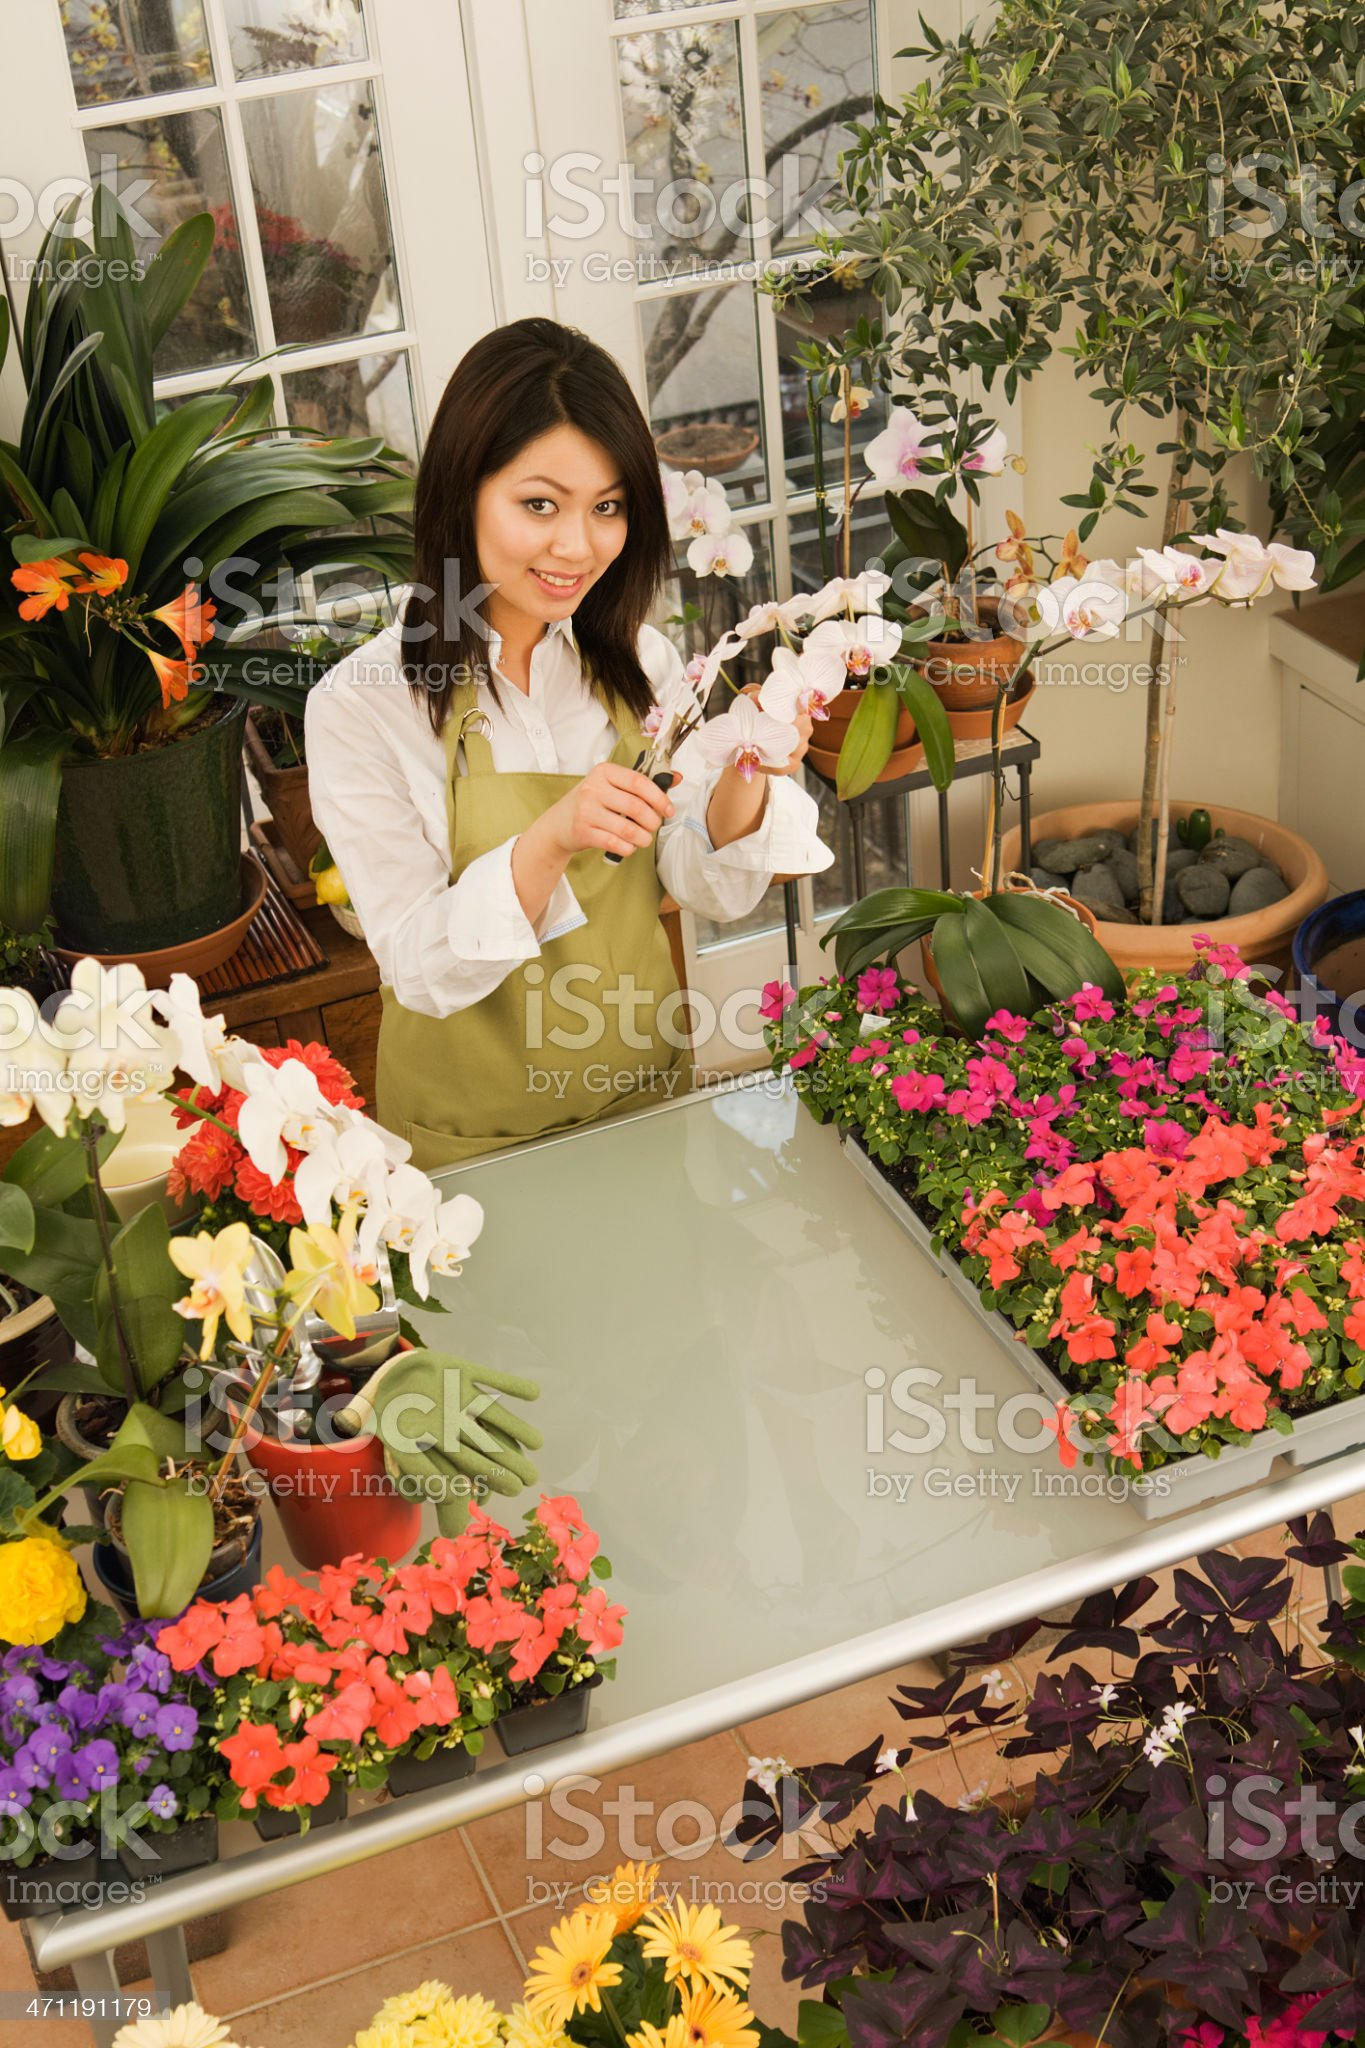 Florist Working in Her Flower Shop High Angle Looking Down royalty-free stock photo